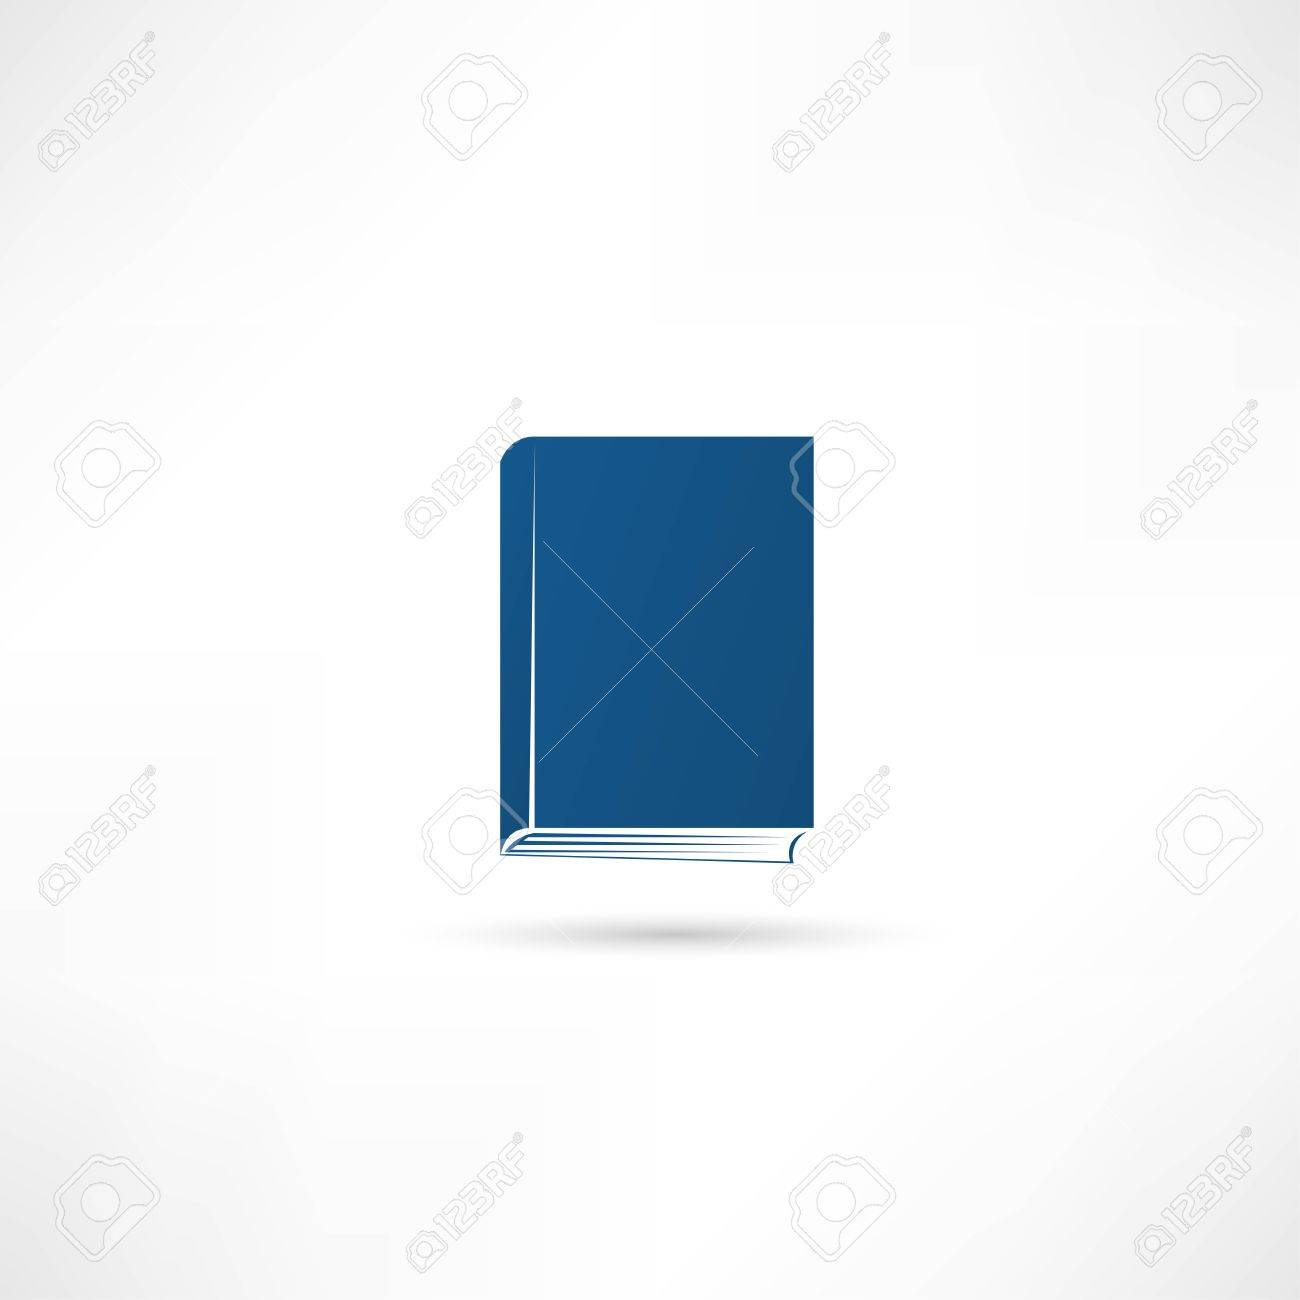 book icon Stock Vector - 25018531